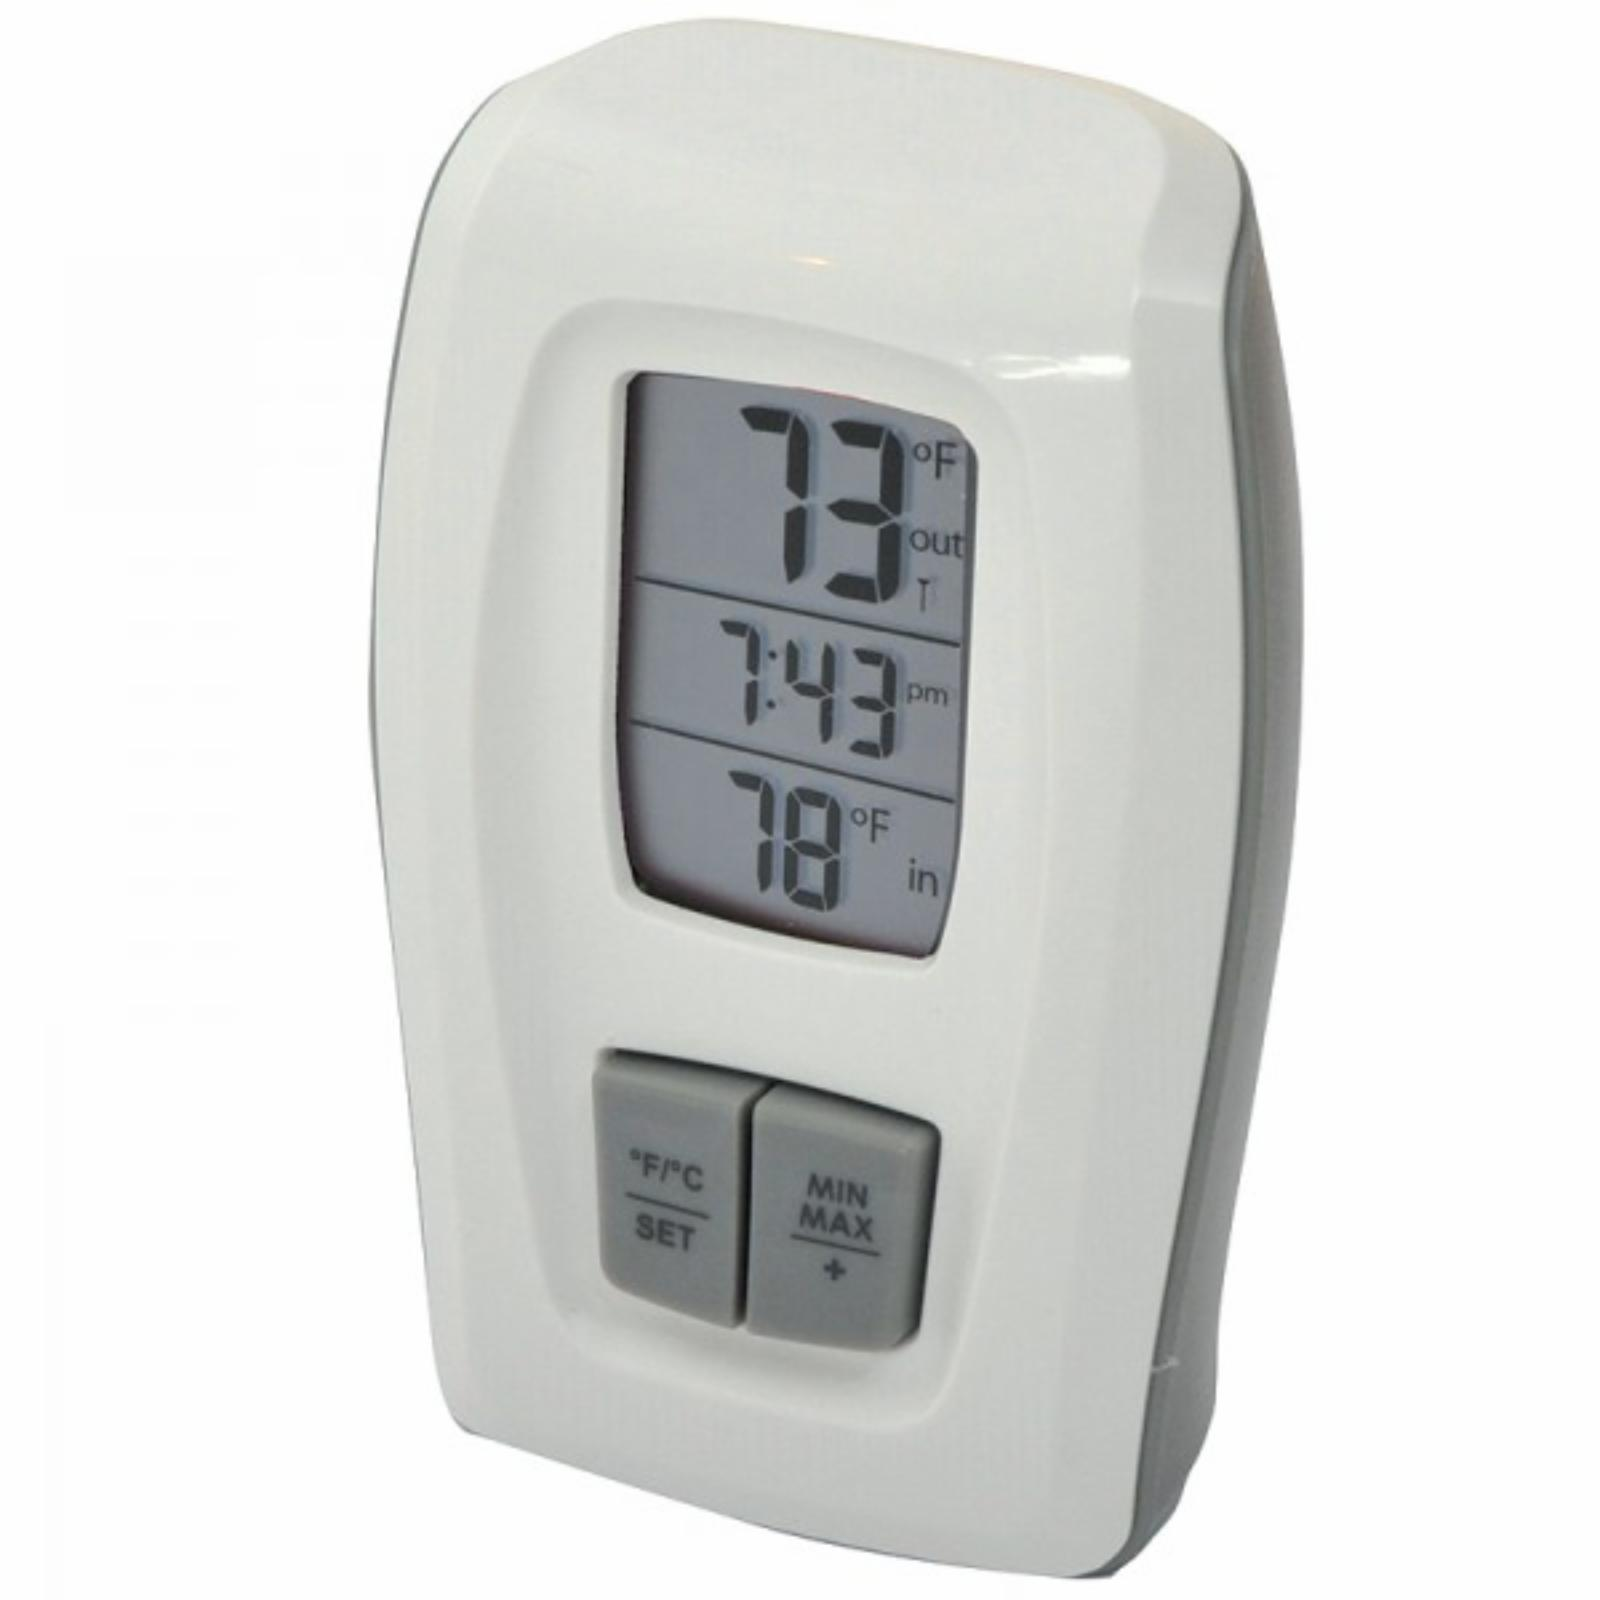 Accurate indoor outdoor thermometer | Compare Prices at Nextag